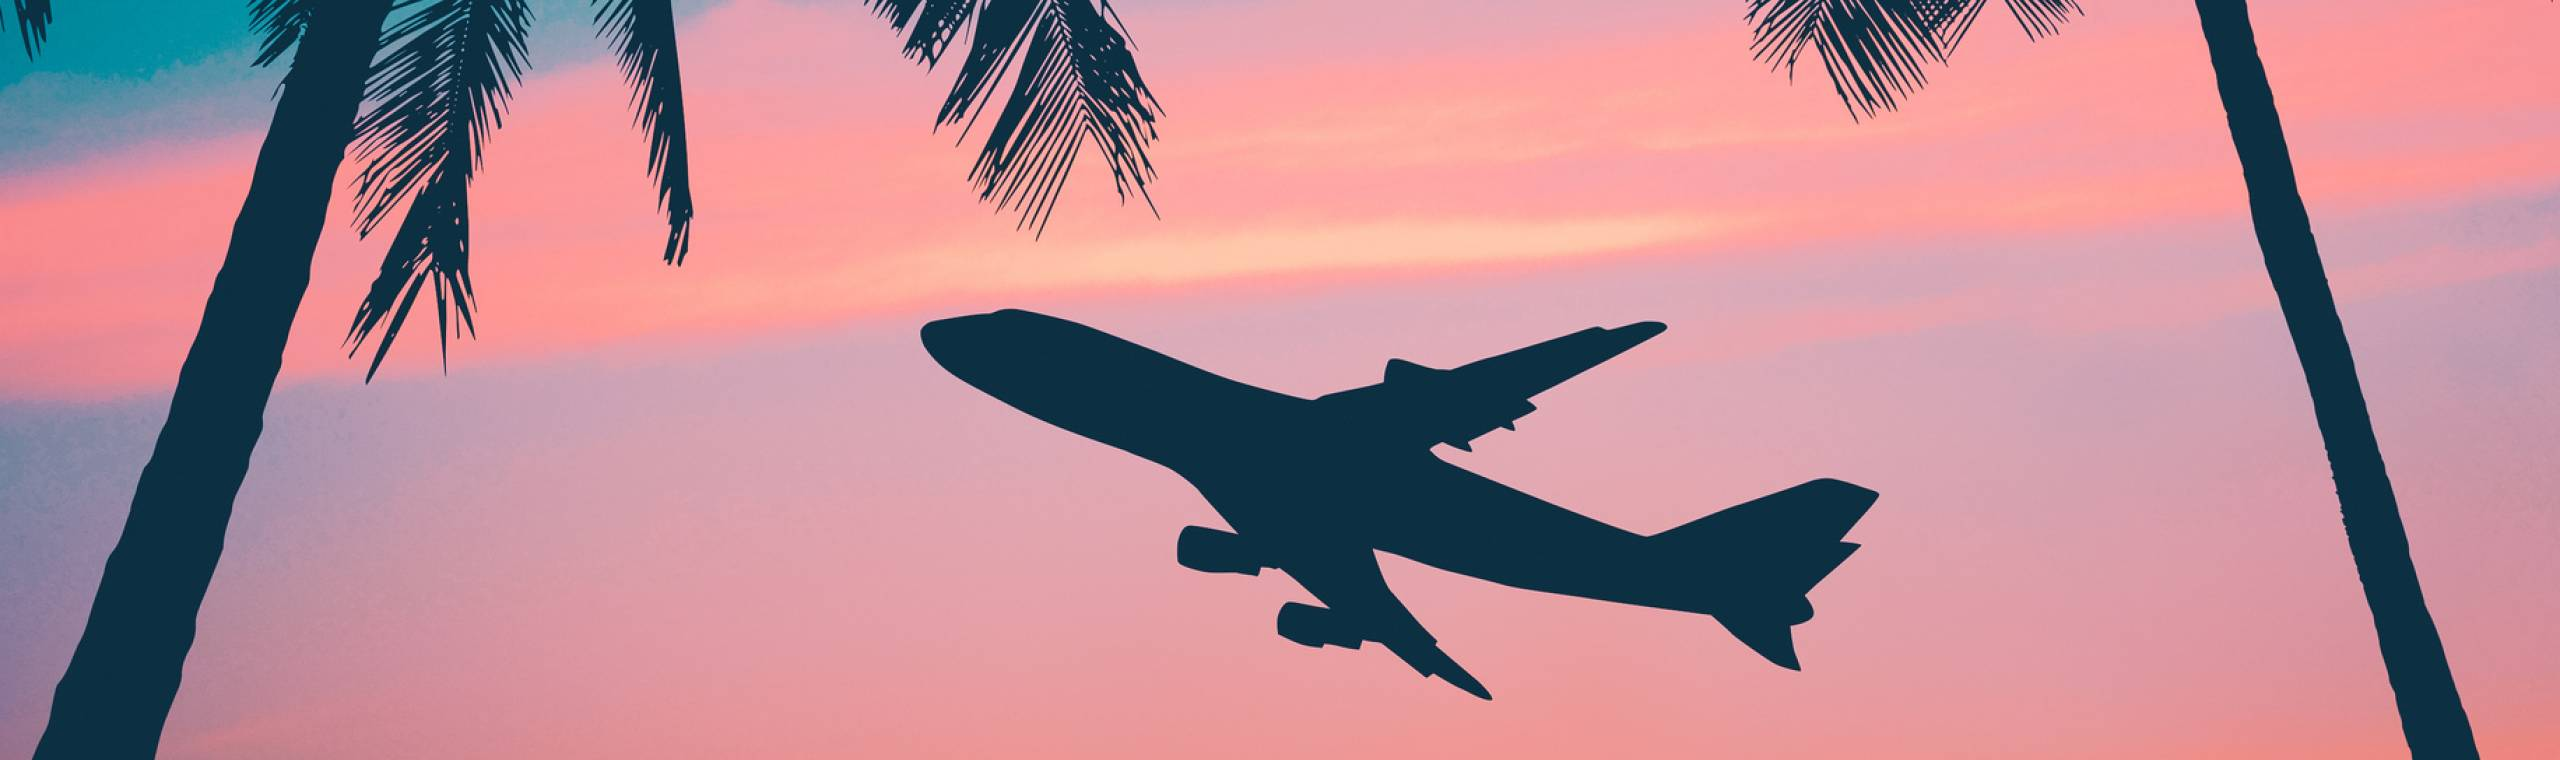 graphic of airplane sunset palm trees hawaii